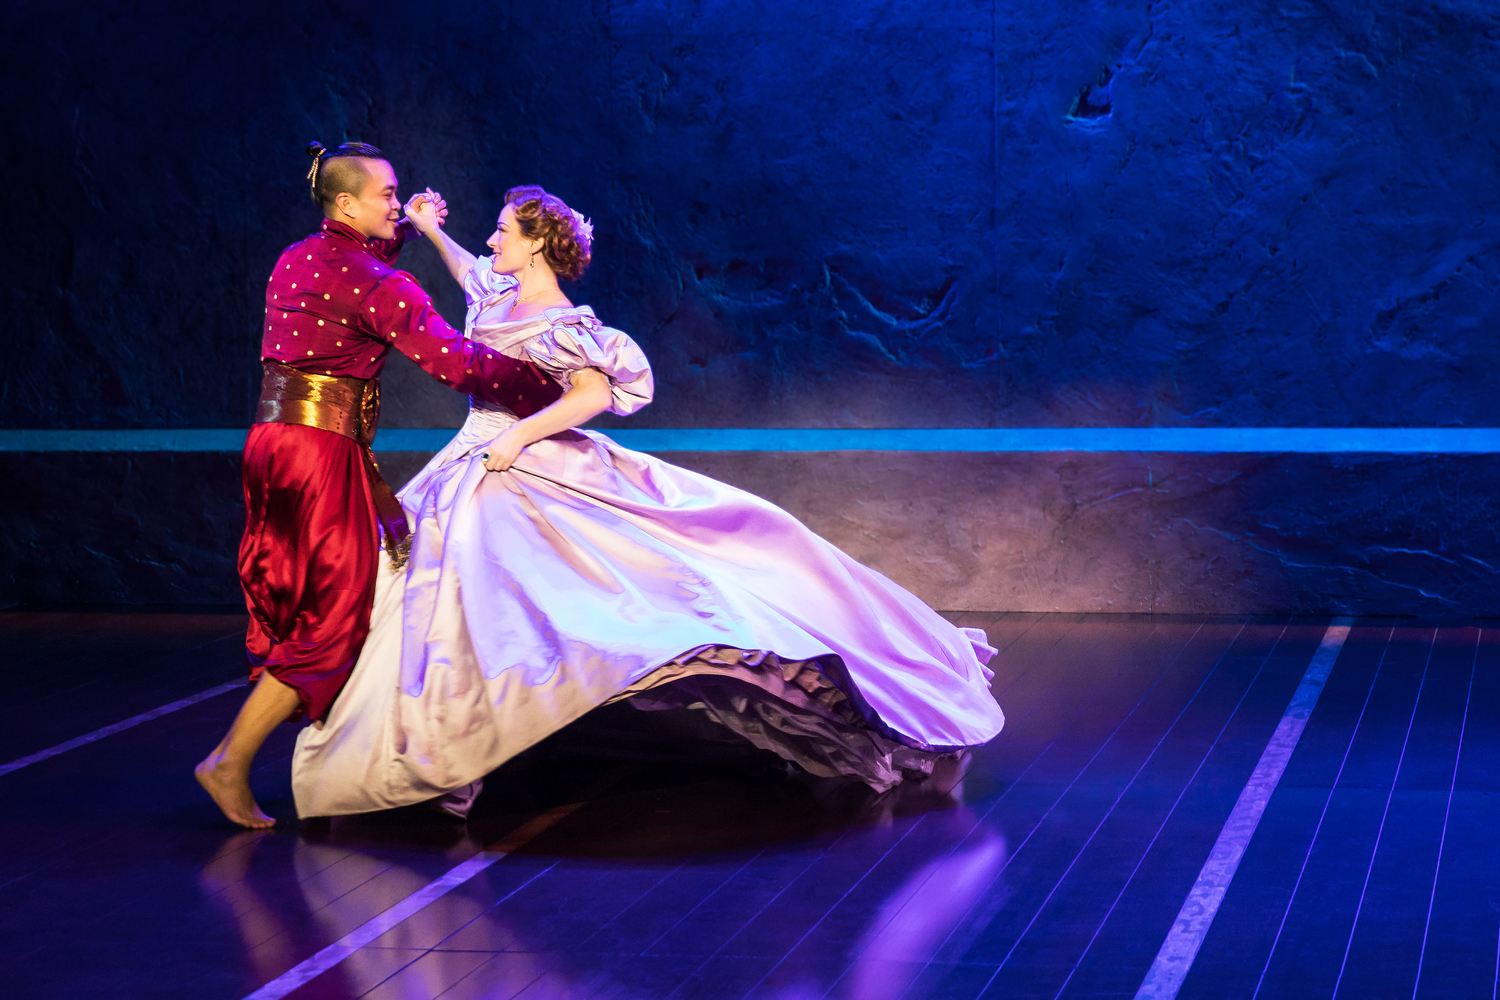 BWW Interview: Jose Llana of THE KING AND I Brings More Than a Great Show to Omaha